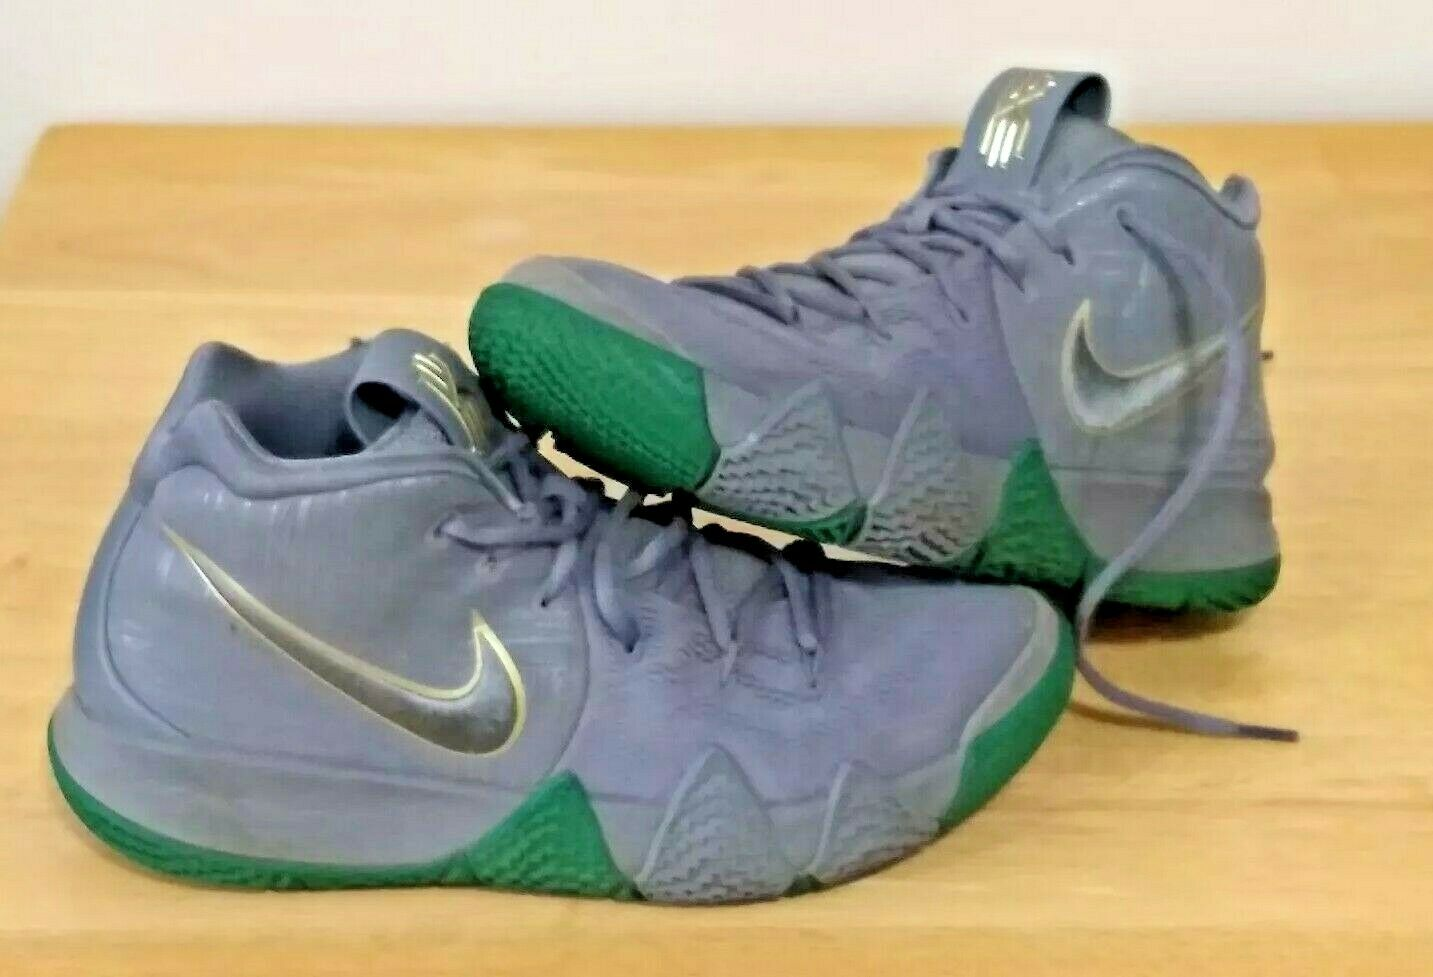 new products 6302a 3f44f Nike Kyrie 4 City of Guardians Cool Grey White Green 943806 001 Size 8  Sneakers